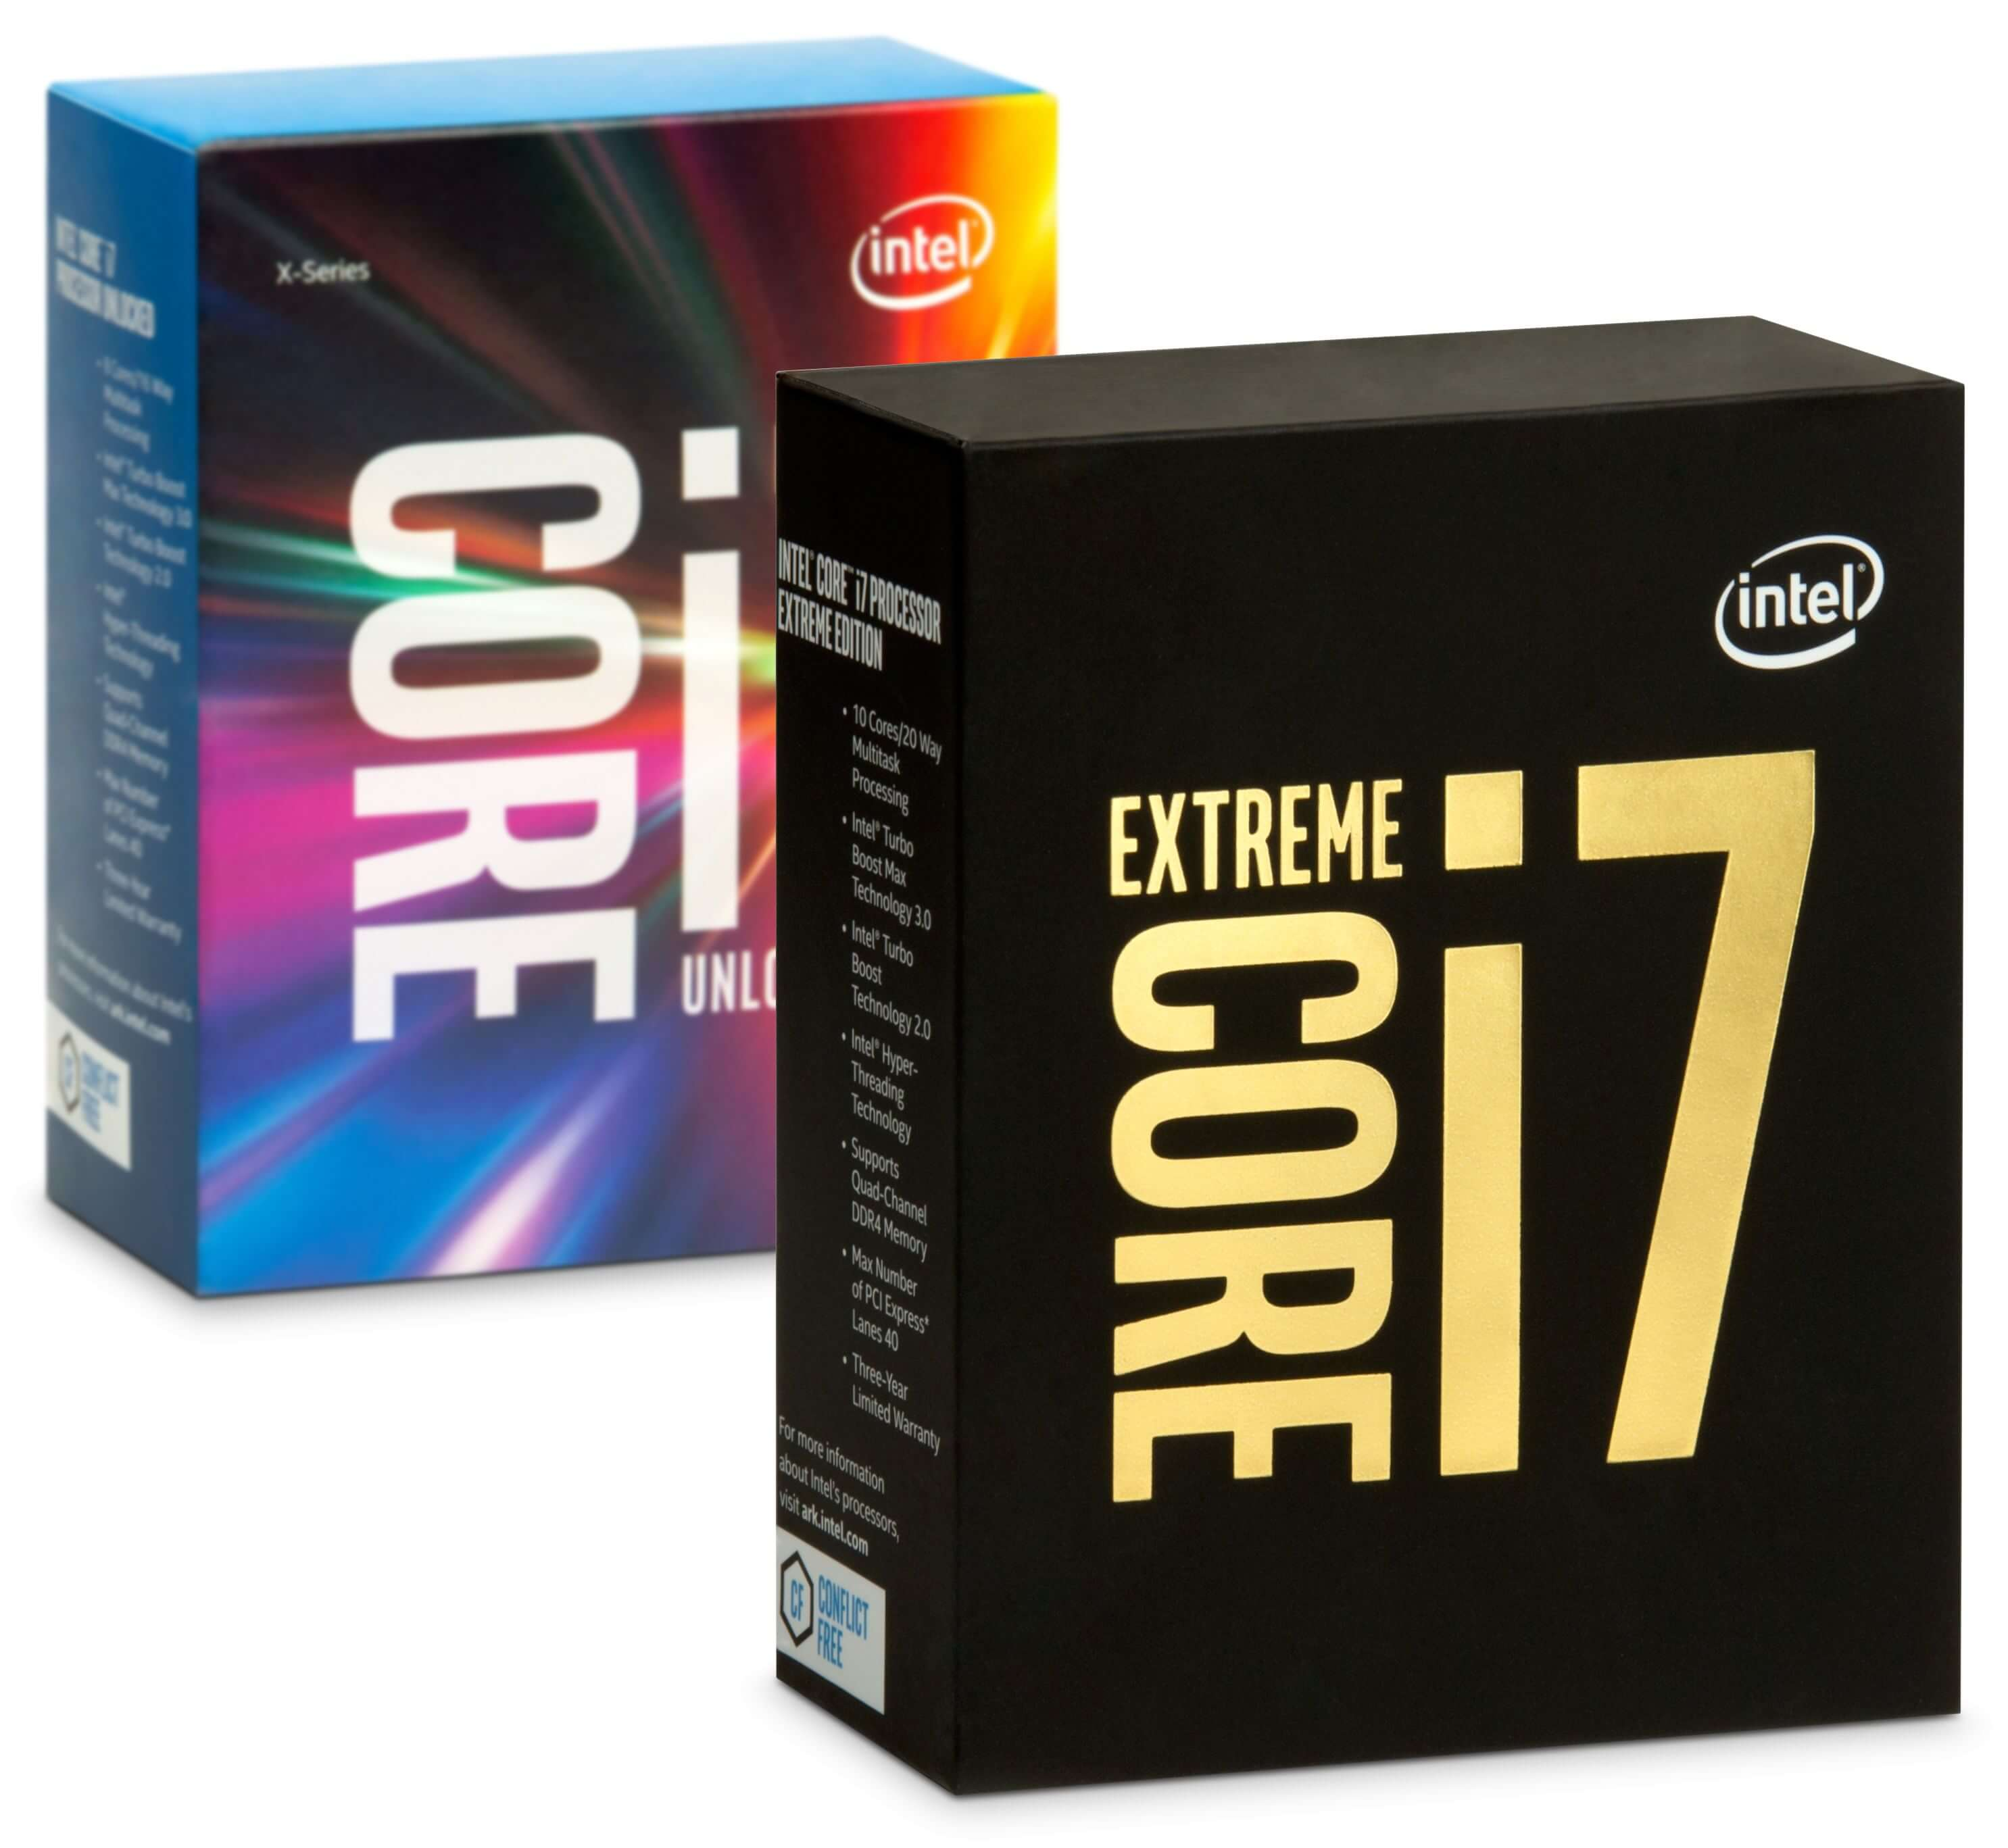 Intel may drop extreme edition branding from its high end cpus.